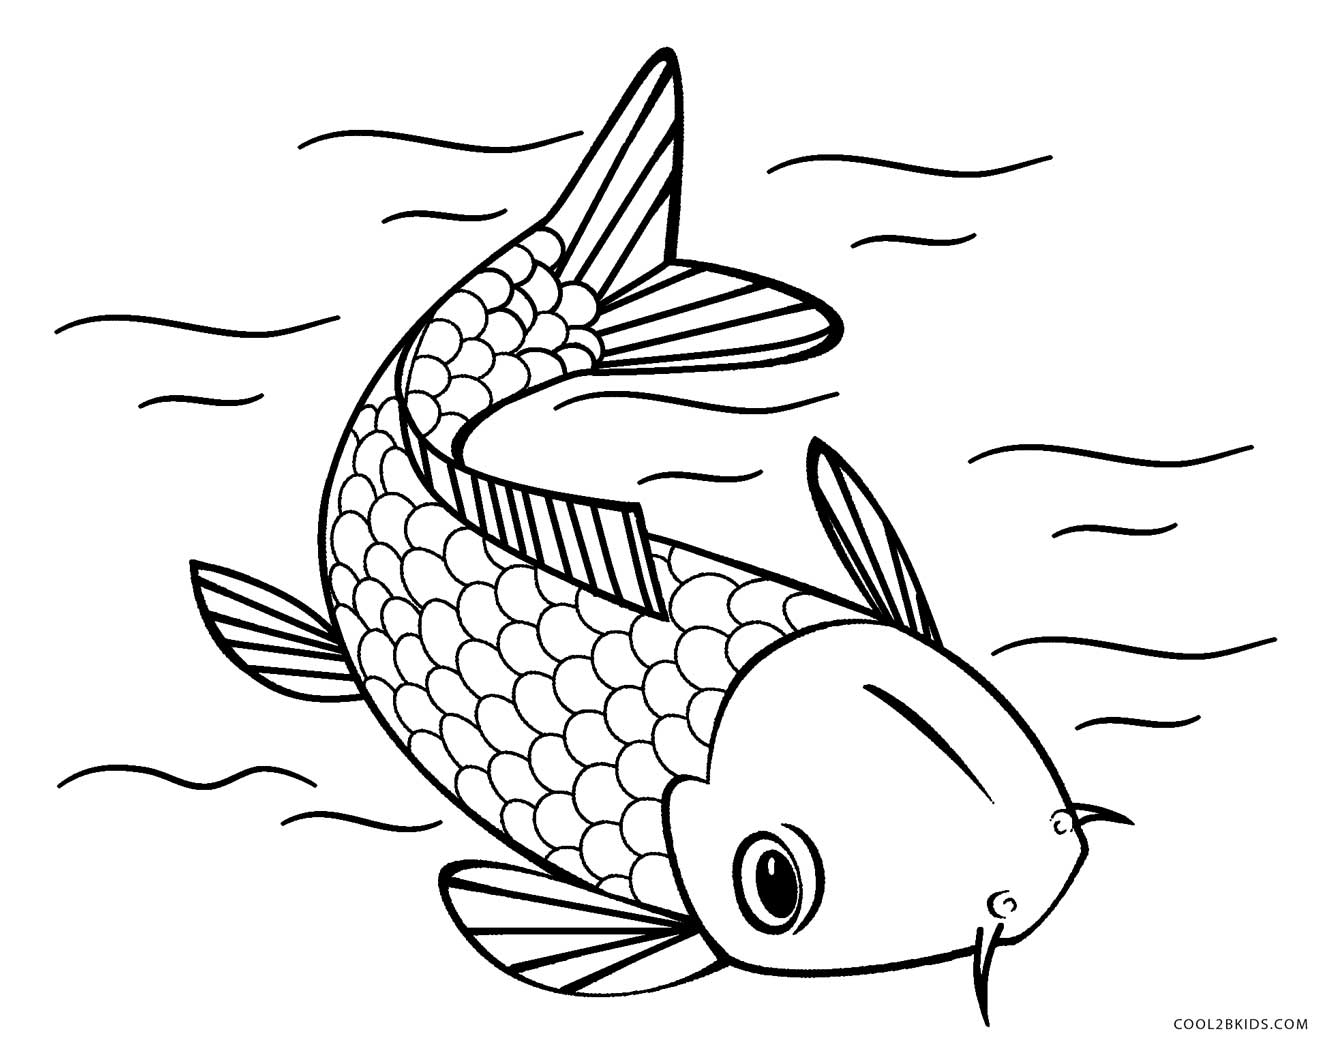 detailed fish coloring pages 24 coloring page of fish in 2020 fish coloring page detailed pages fish coloring